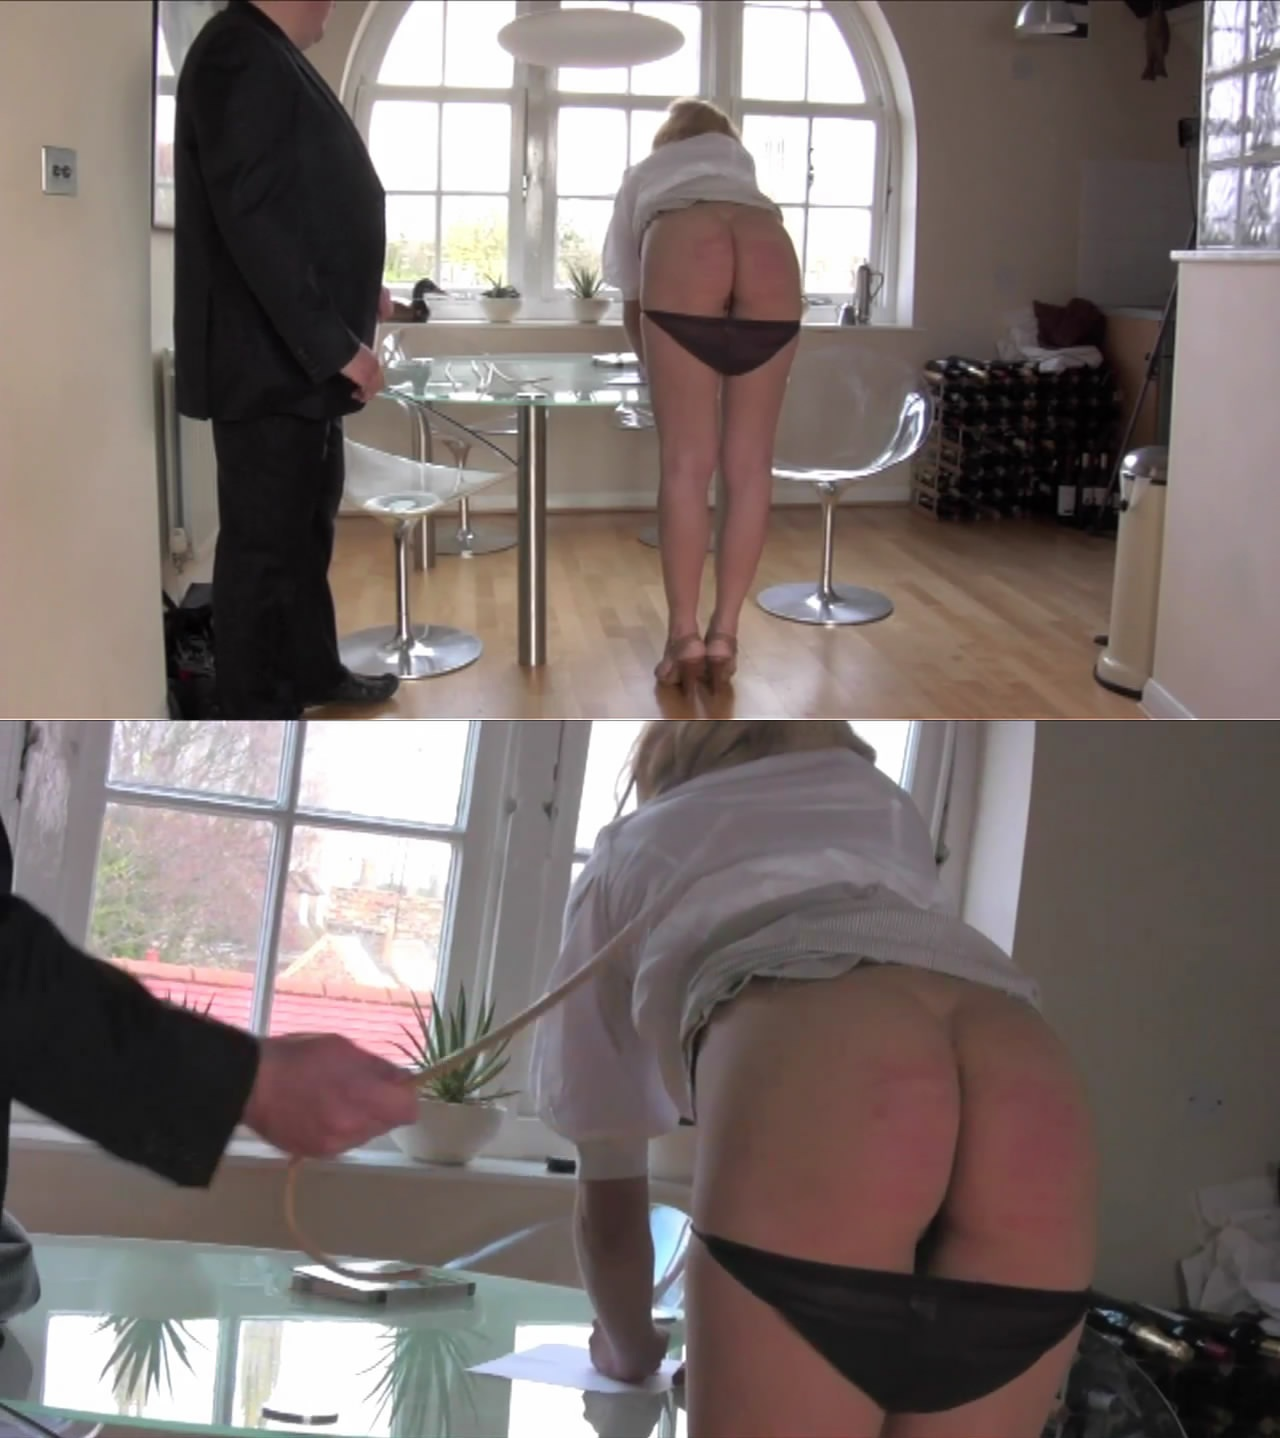 Northern Spanking – MP4/HD – The Traveling Disciplinarian & The Naughty Nurse – 2/2